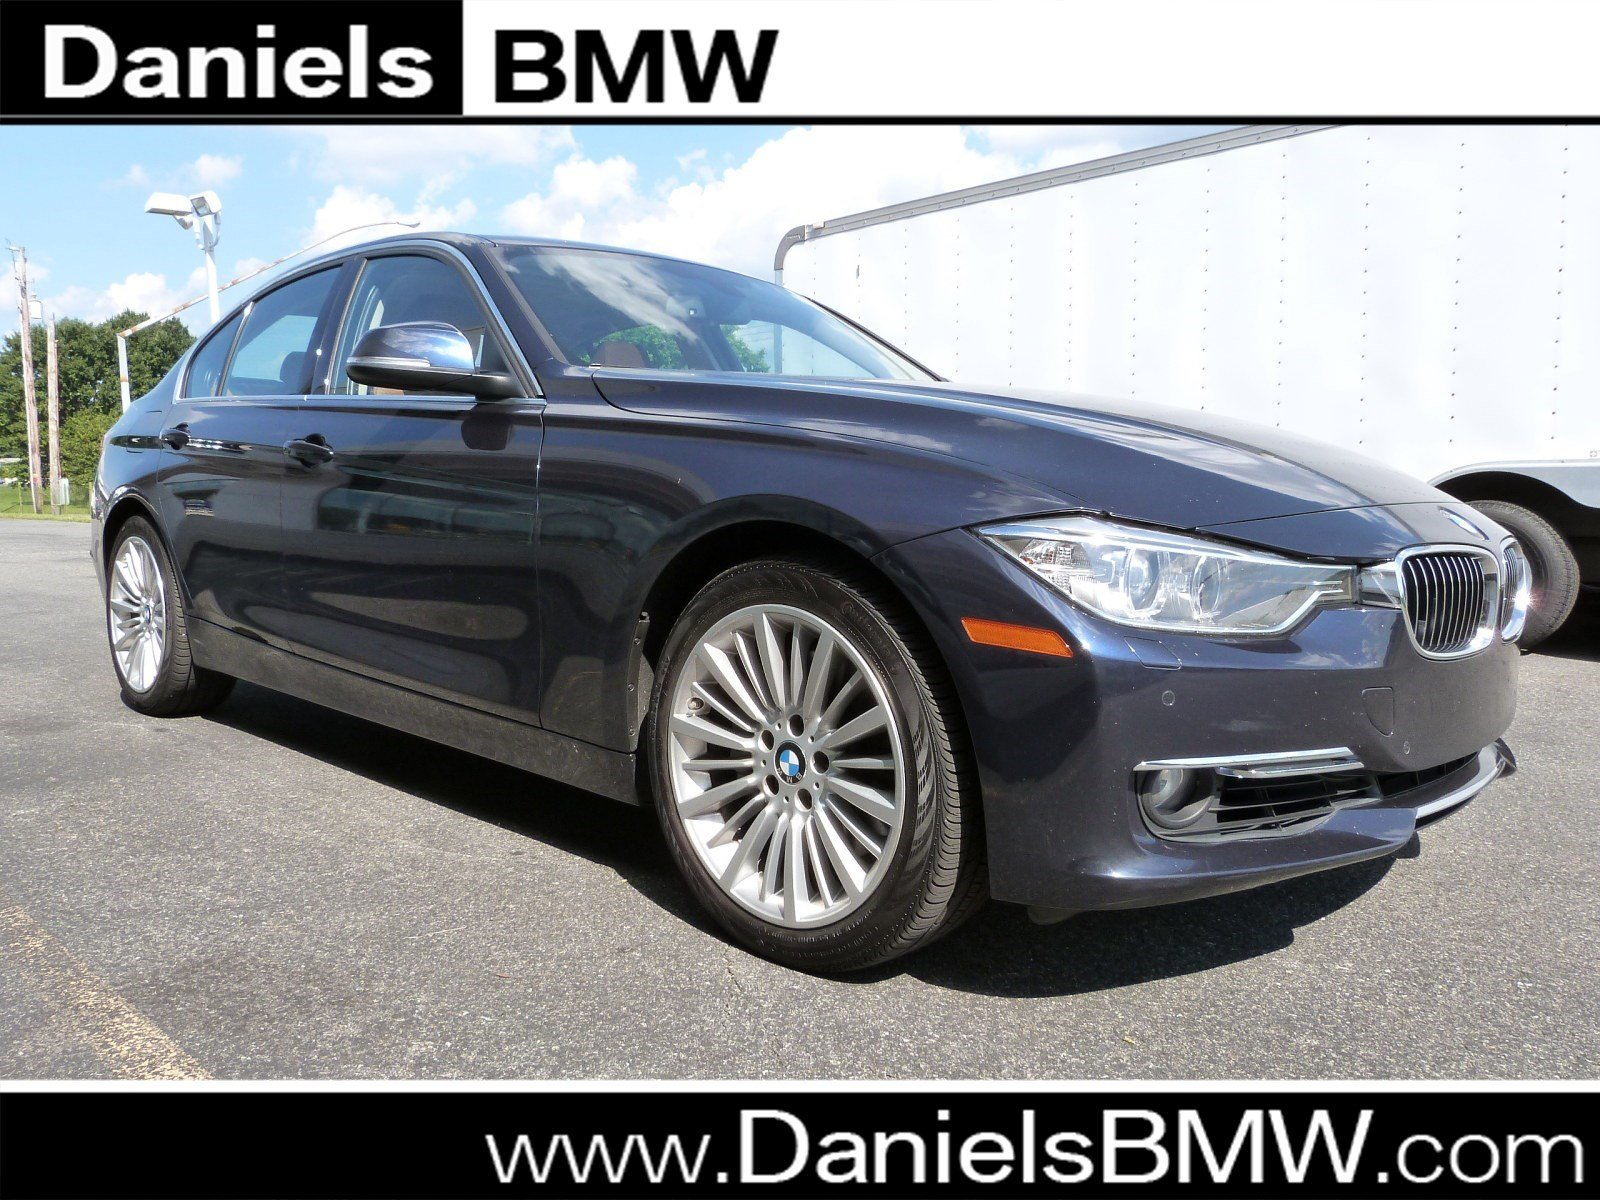 Pre Owned 2014 BMW 3 Series 335i xDrive 4dr Car in Allentown